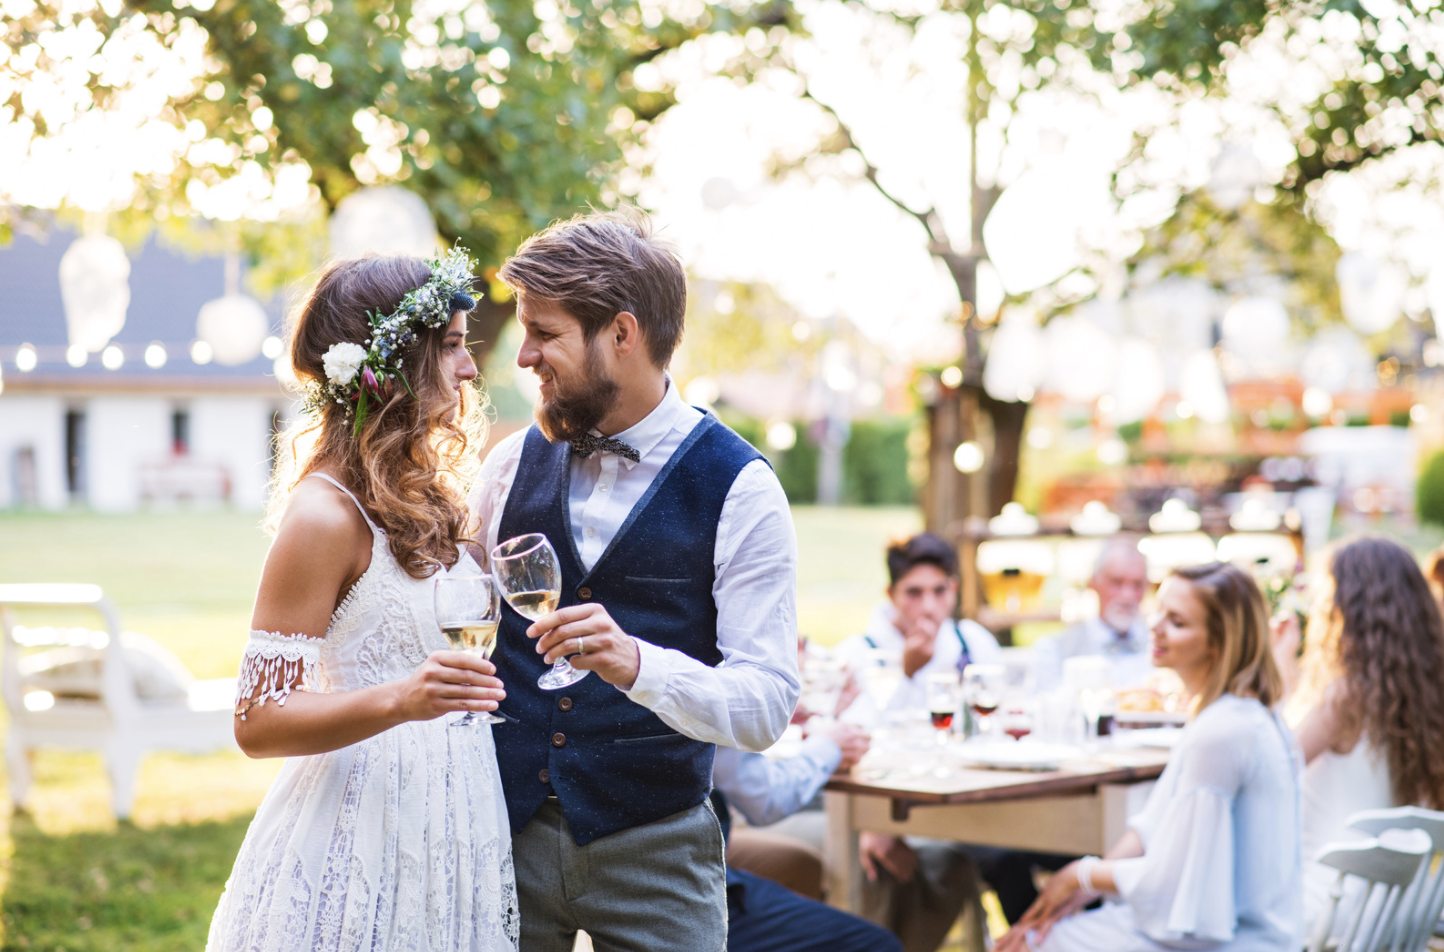 How to Throw an Unforgettable Wedding at Home